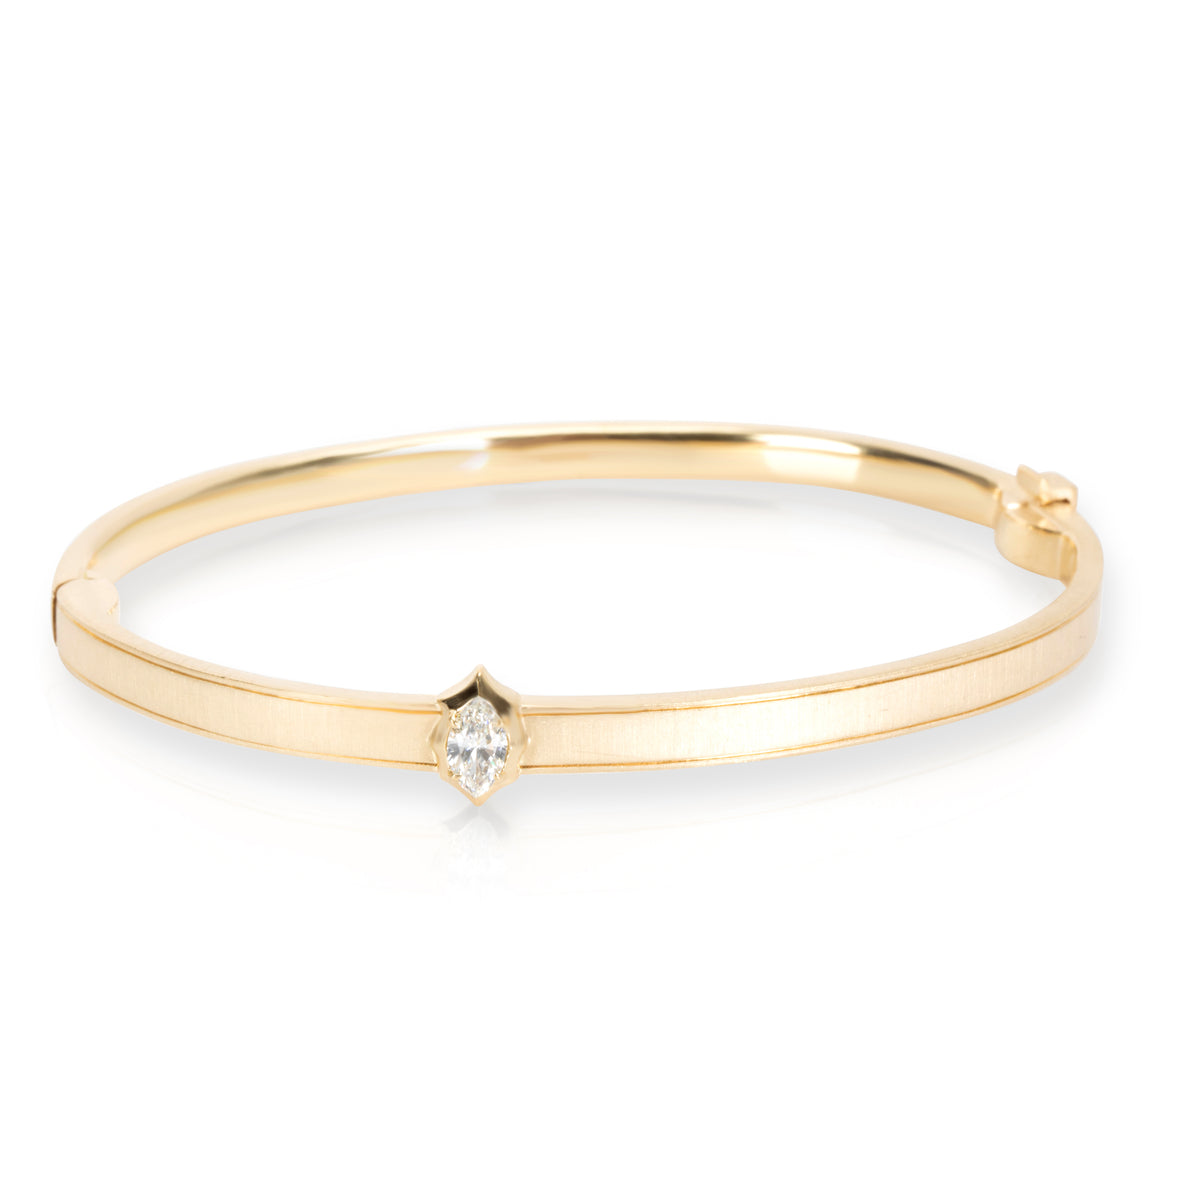 Jade Trau Alchemy Maverick Bangle in 18KT Yellow Gold 0.20 Ct